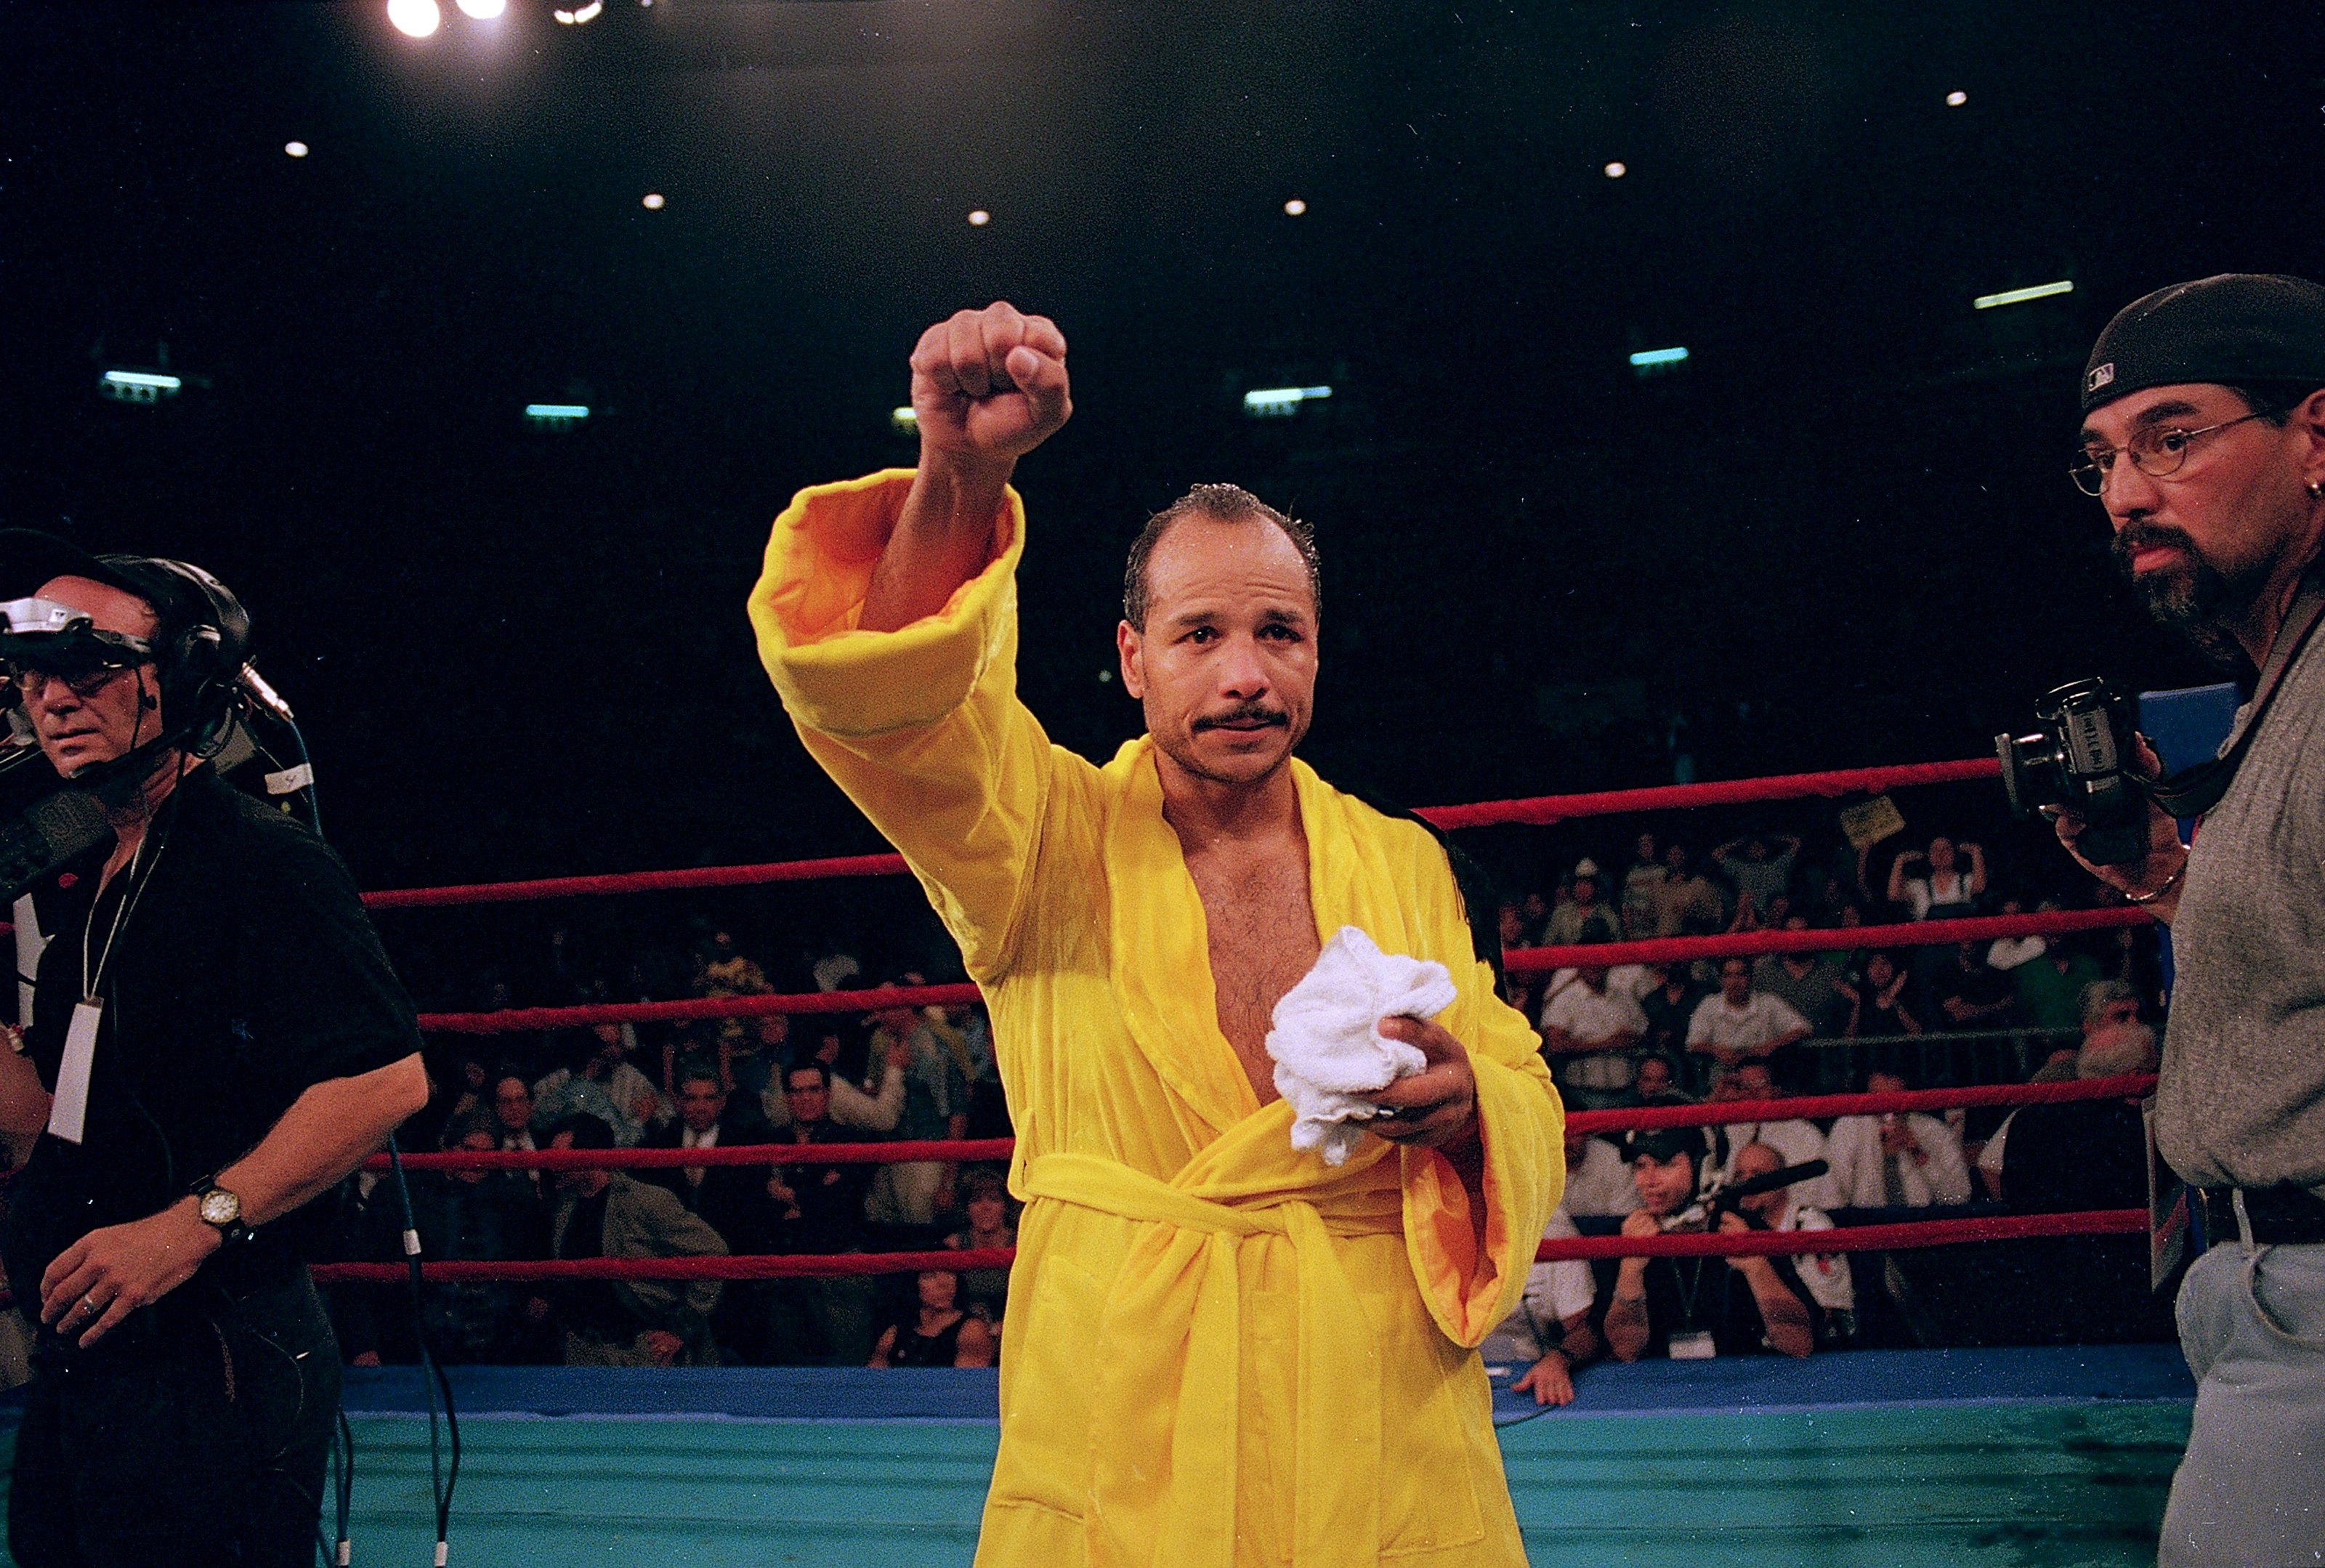 Tony Ayala Jr. had unlimited talent in the boxing ring, but his tumultuous personal life destroyed his promising career.